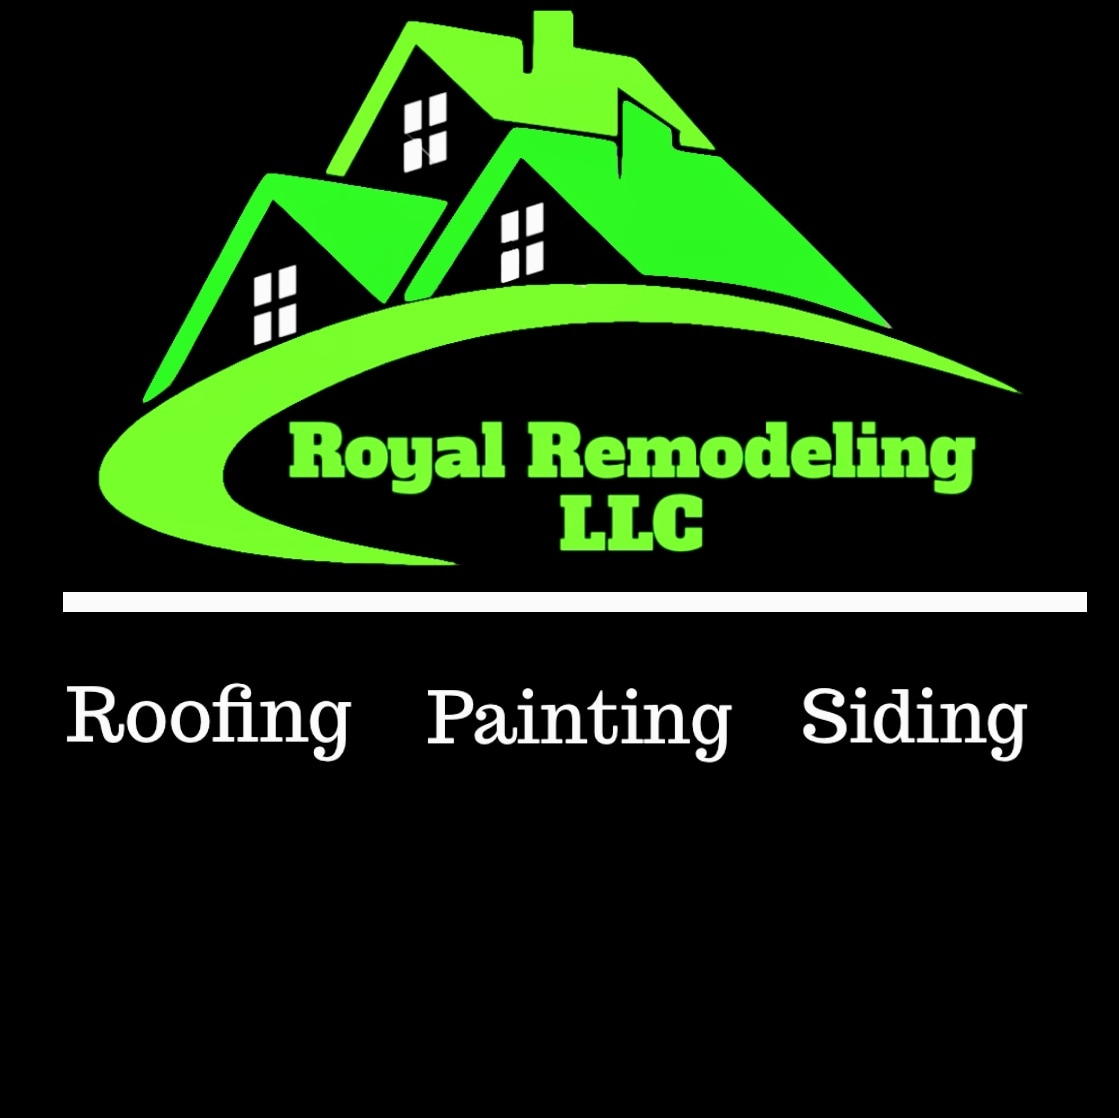 Royal Remodeling LLC